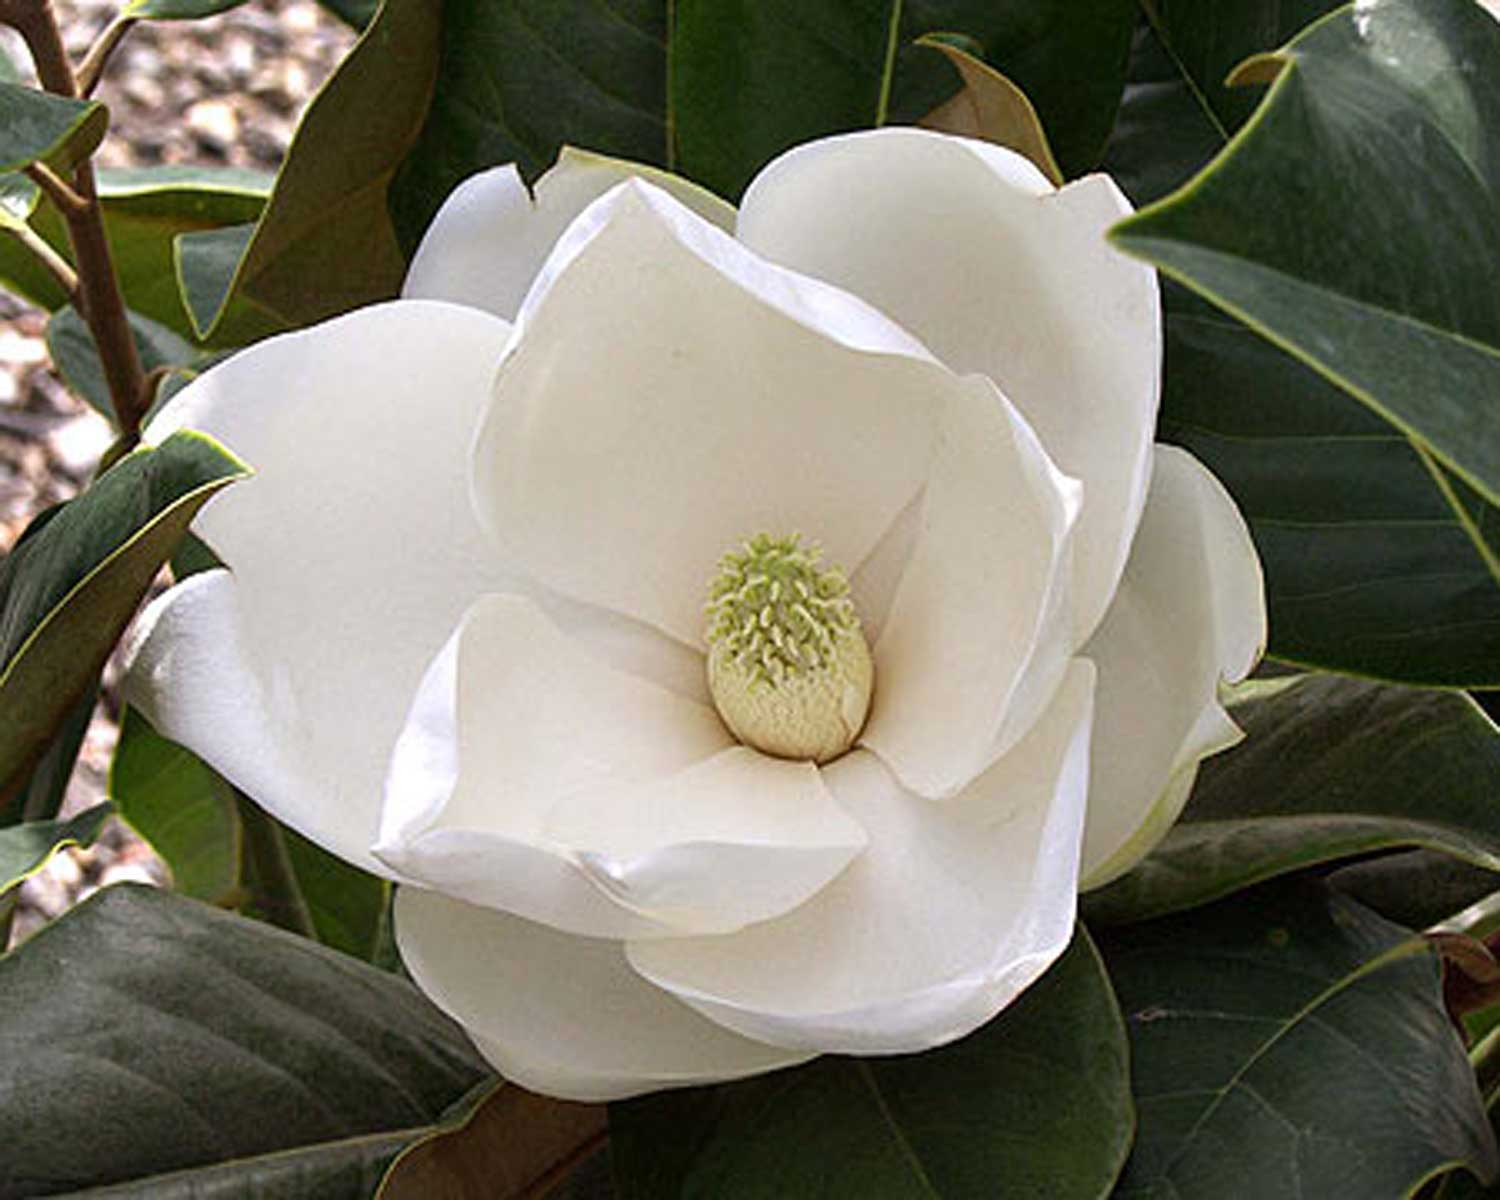 Southern Magnolia white bloom flower